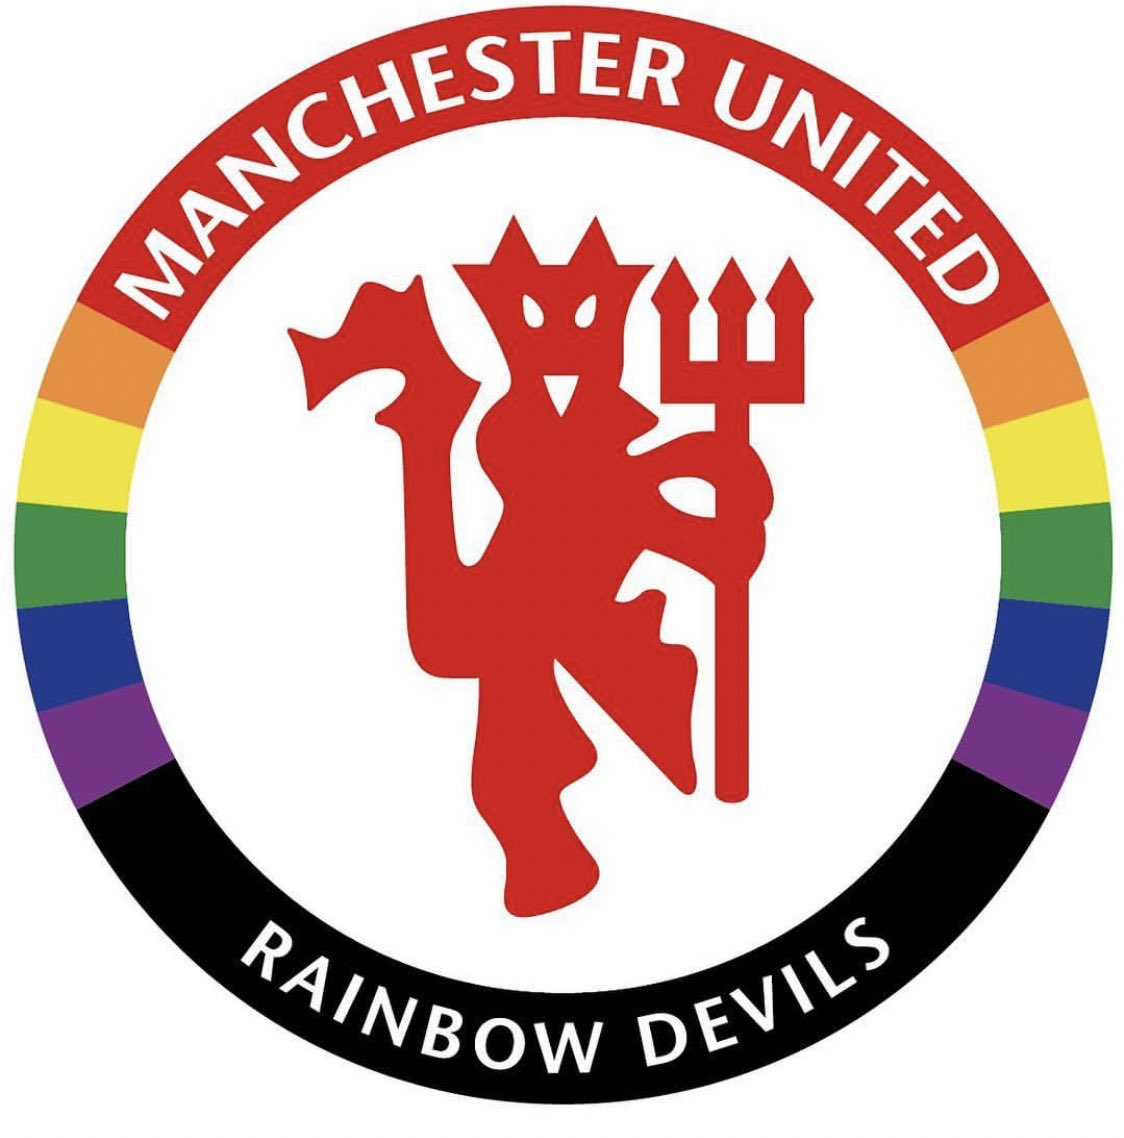 Amazing day! Thank you @ManUtd and everyone else for coming @stonewalluk @Aon_plc @LGBTfdn @villagemancfc @The_FSF #allredallequal